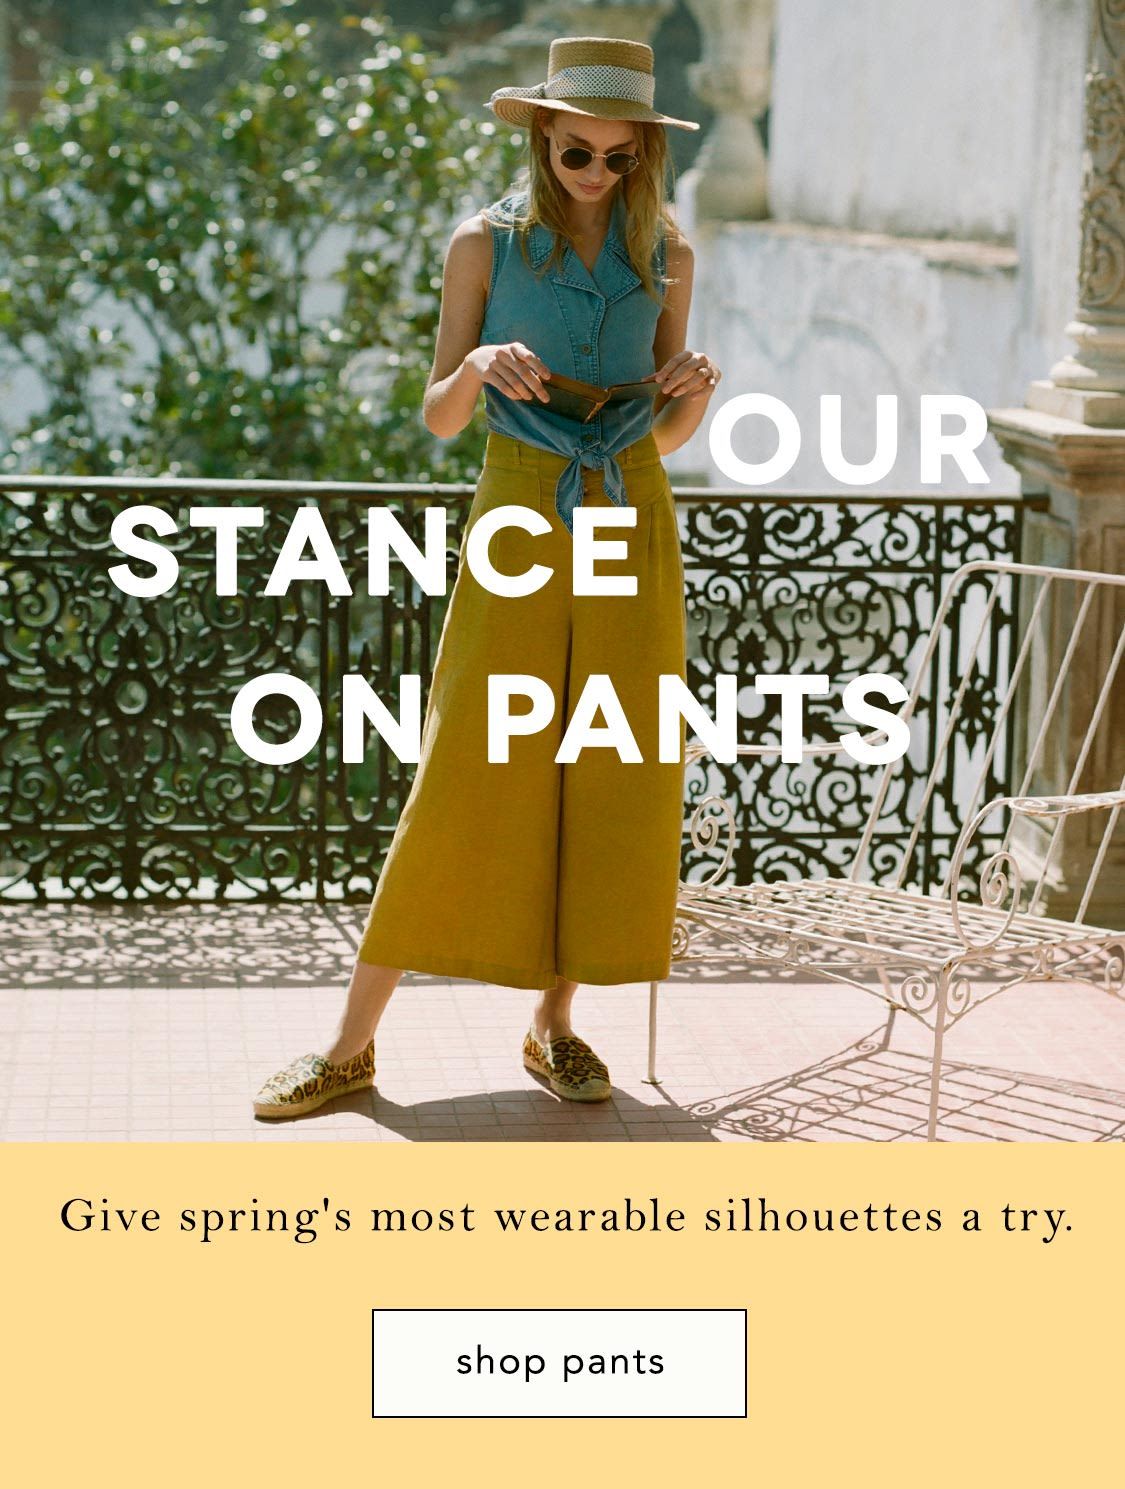 Anthropologie Women S Clothing Accessories Home